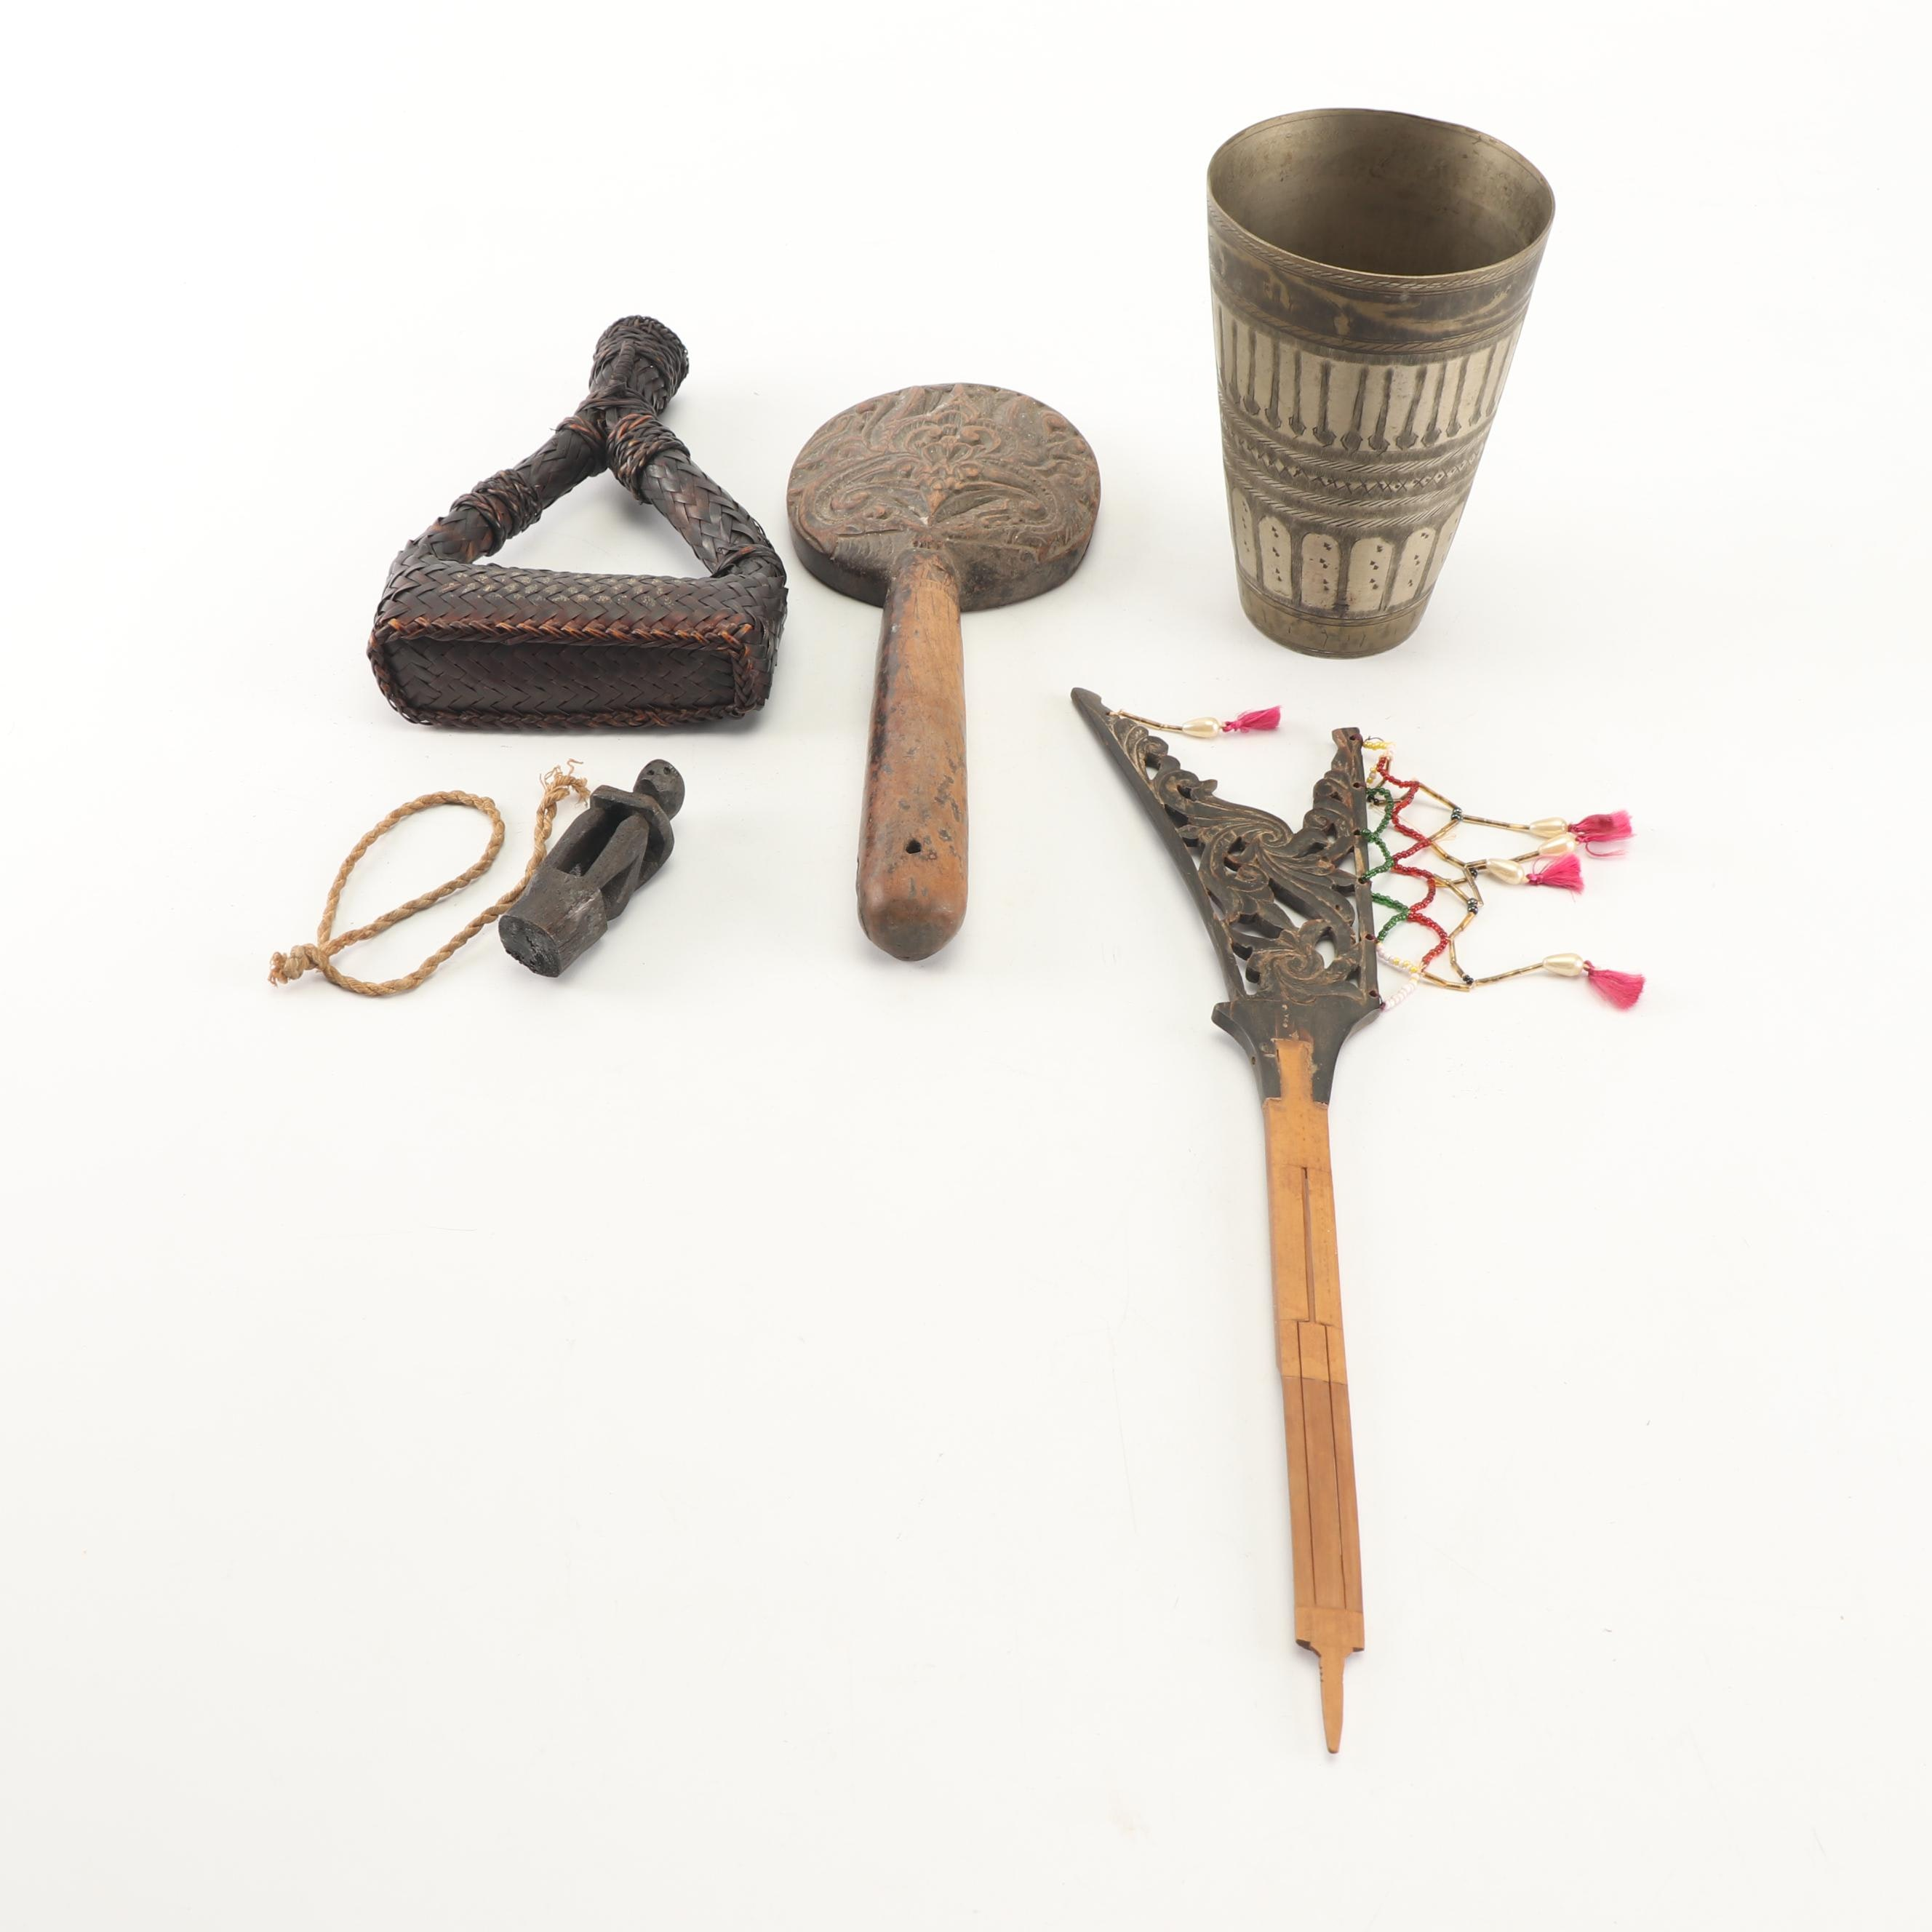 Filipino Pinakbet Woven Cricket Carrier with Figural Stopper and More